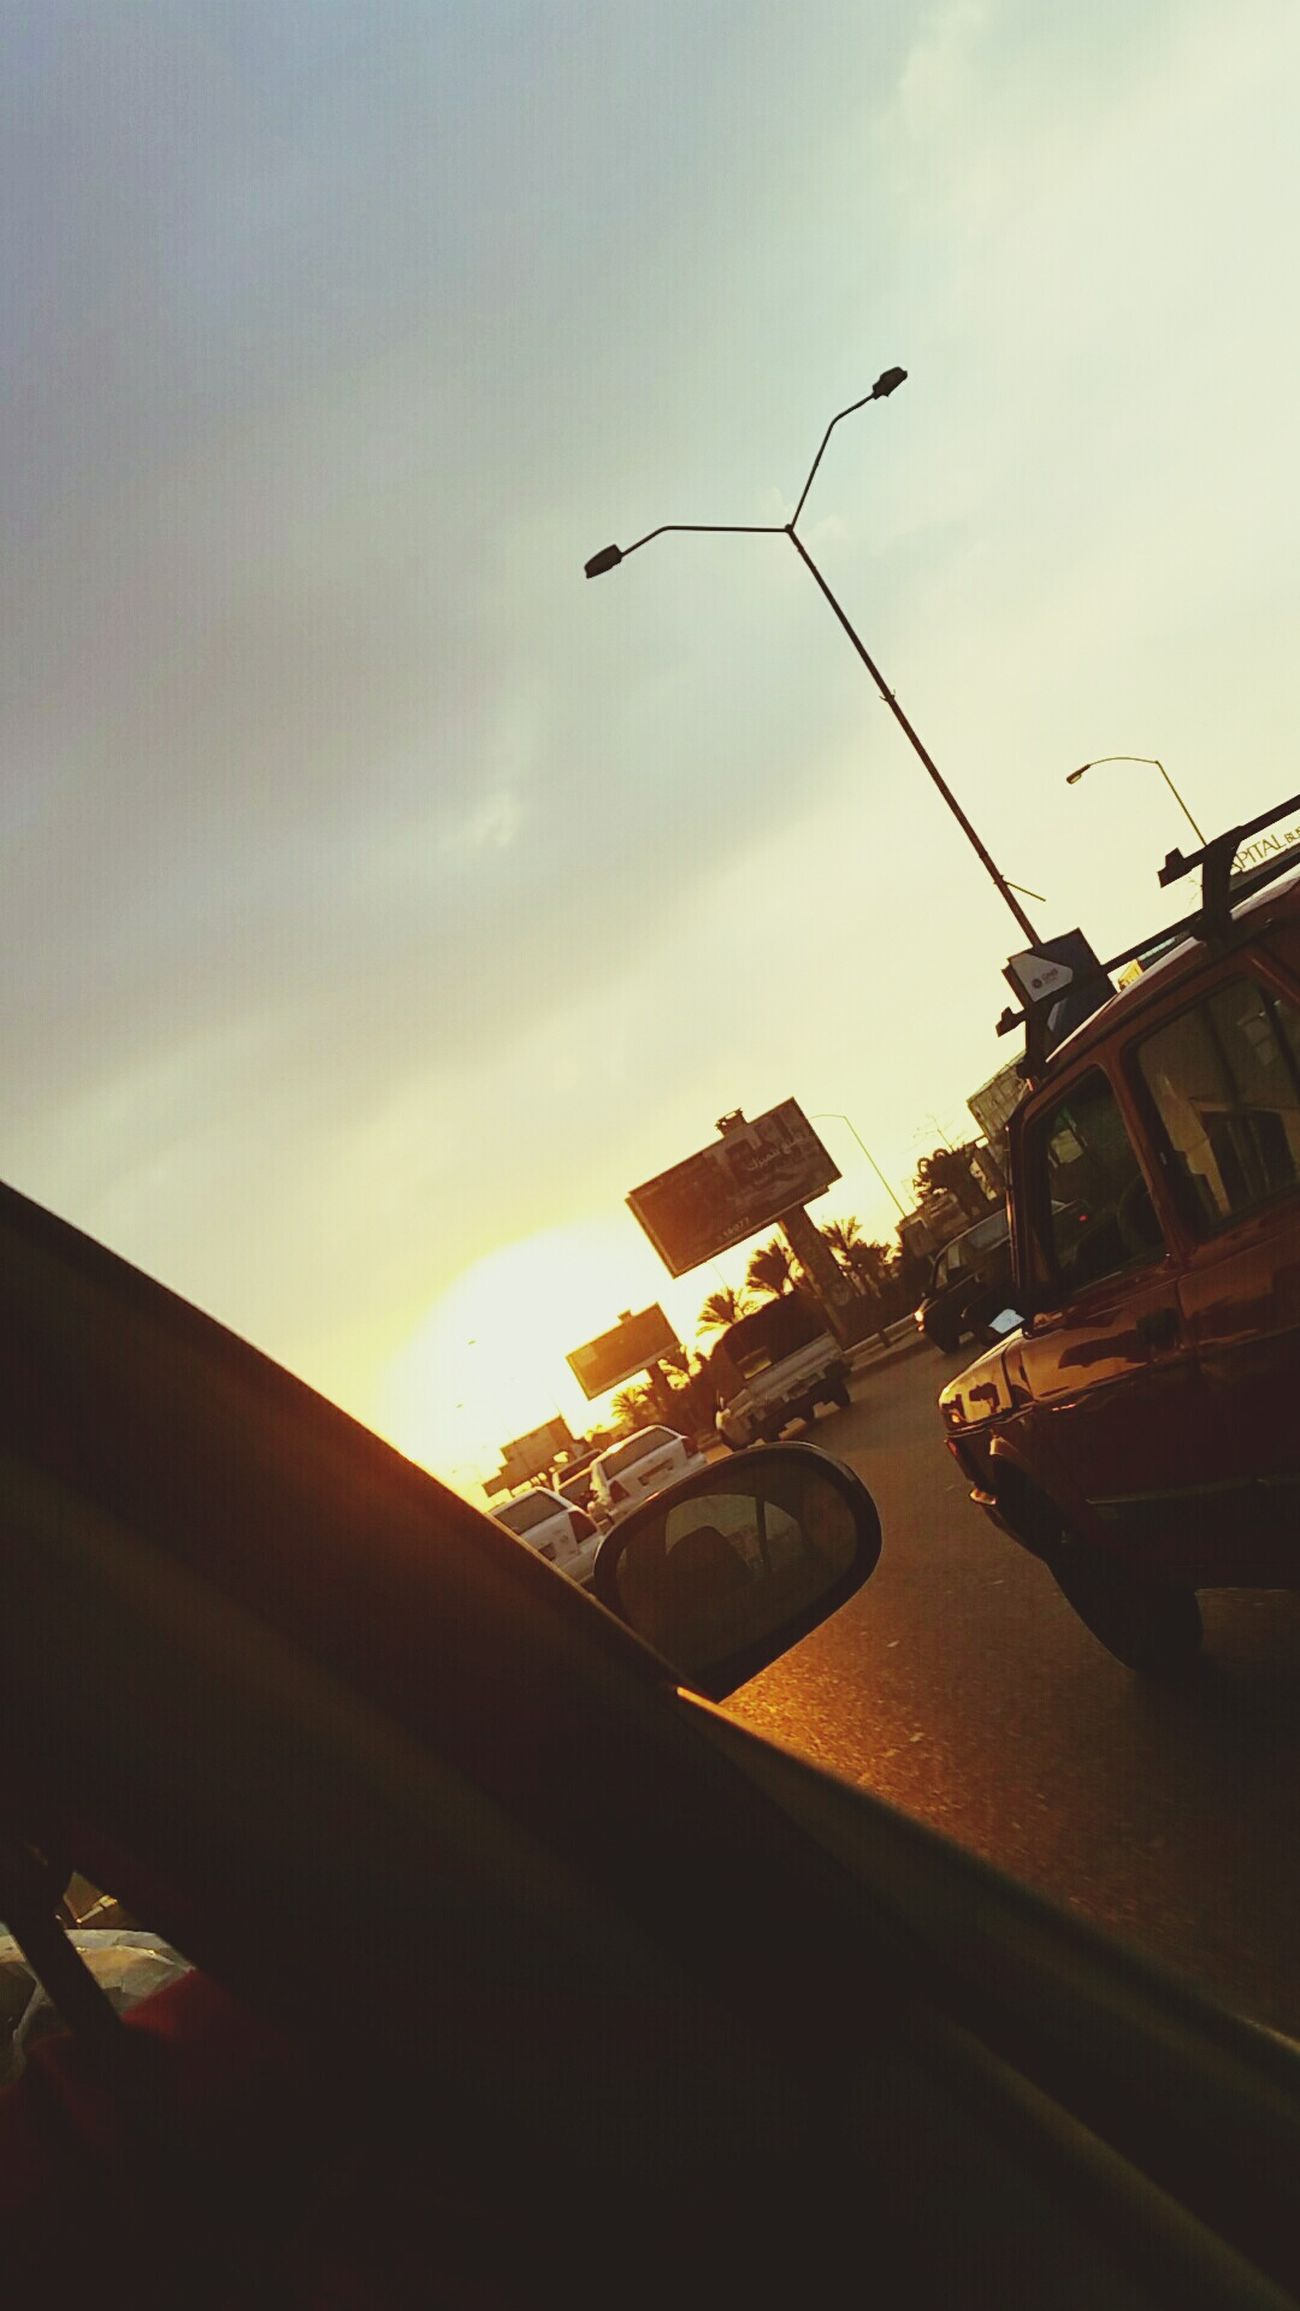 Am falling so am taking my time on ma ride City Driving Transportation Sunset Outdoors Phoyography Vintage Car Vintage Photo